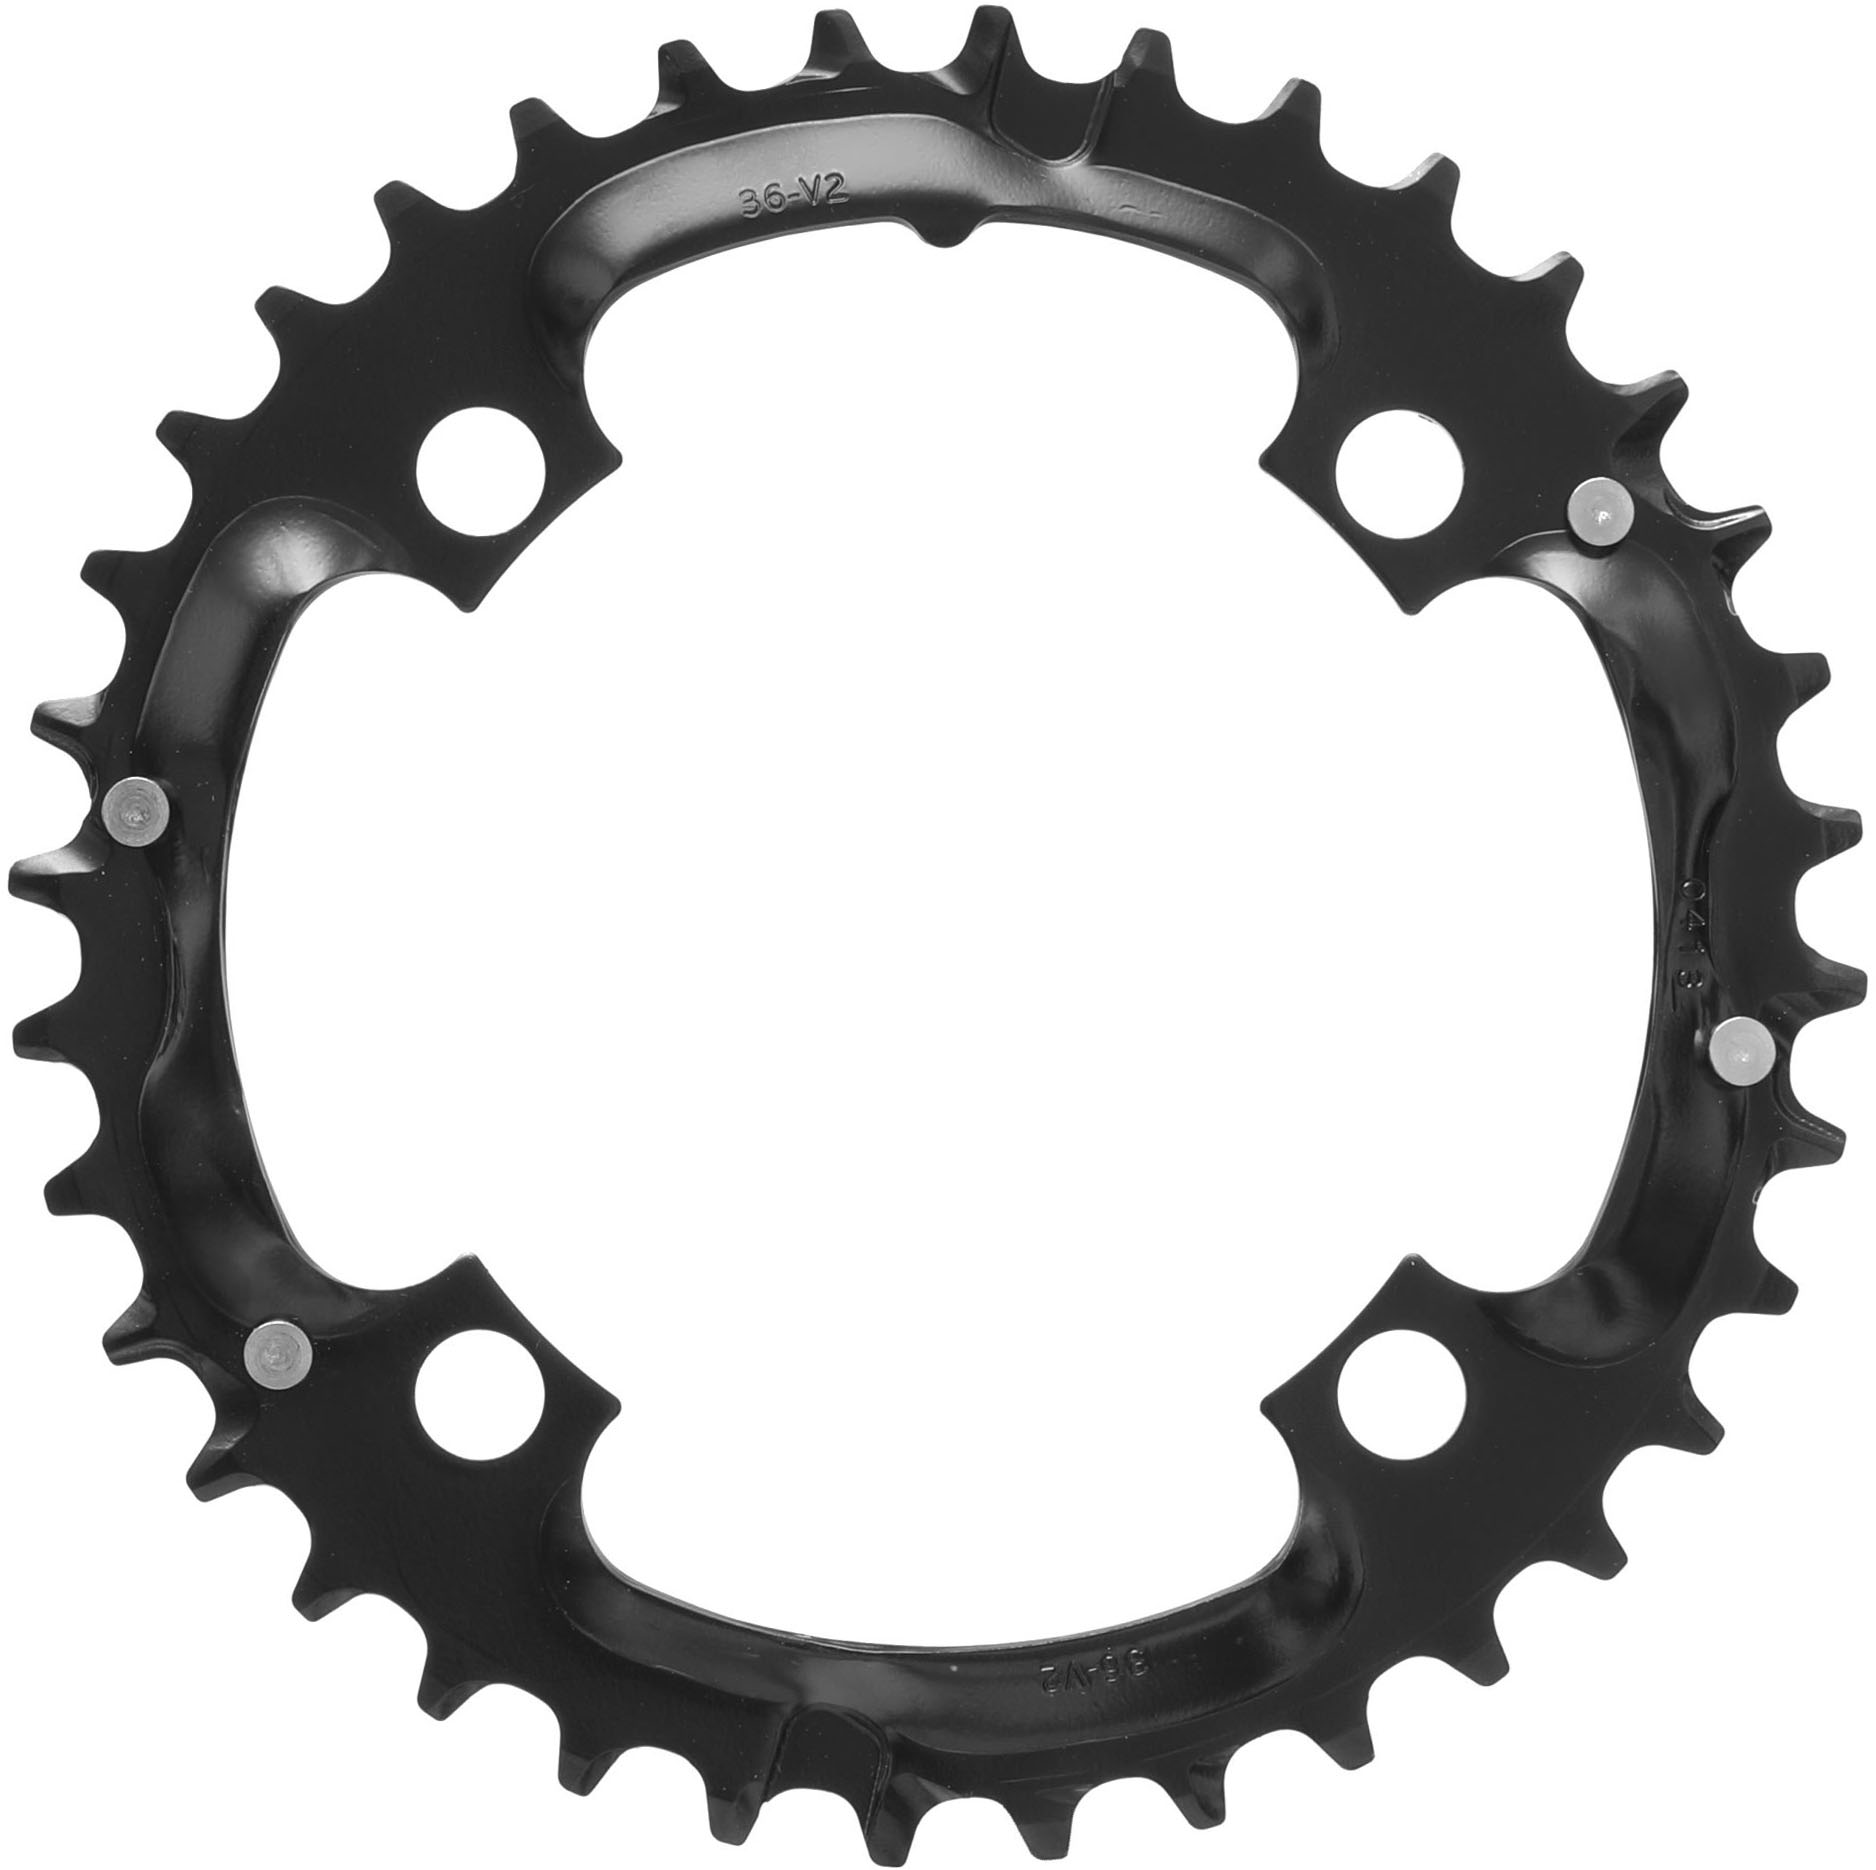 Truvativ MTB Steel Chainring | chainrings_component